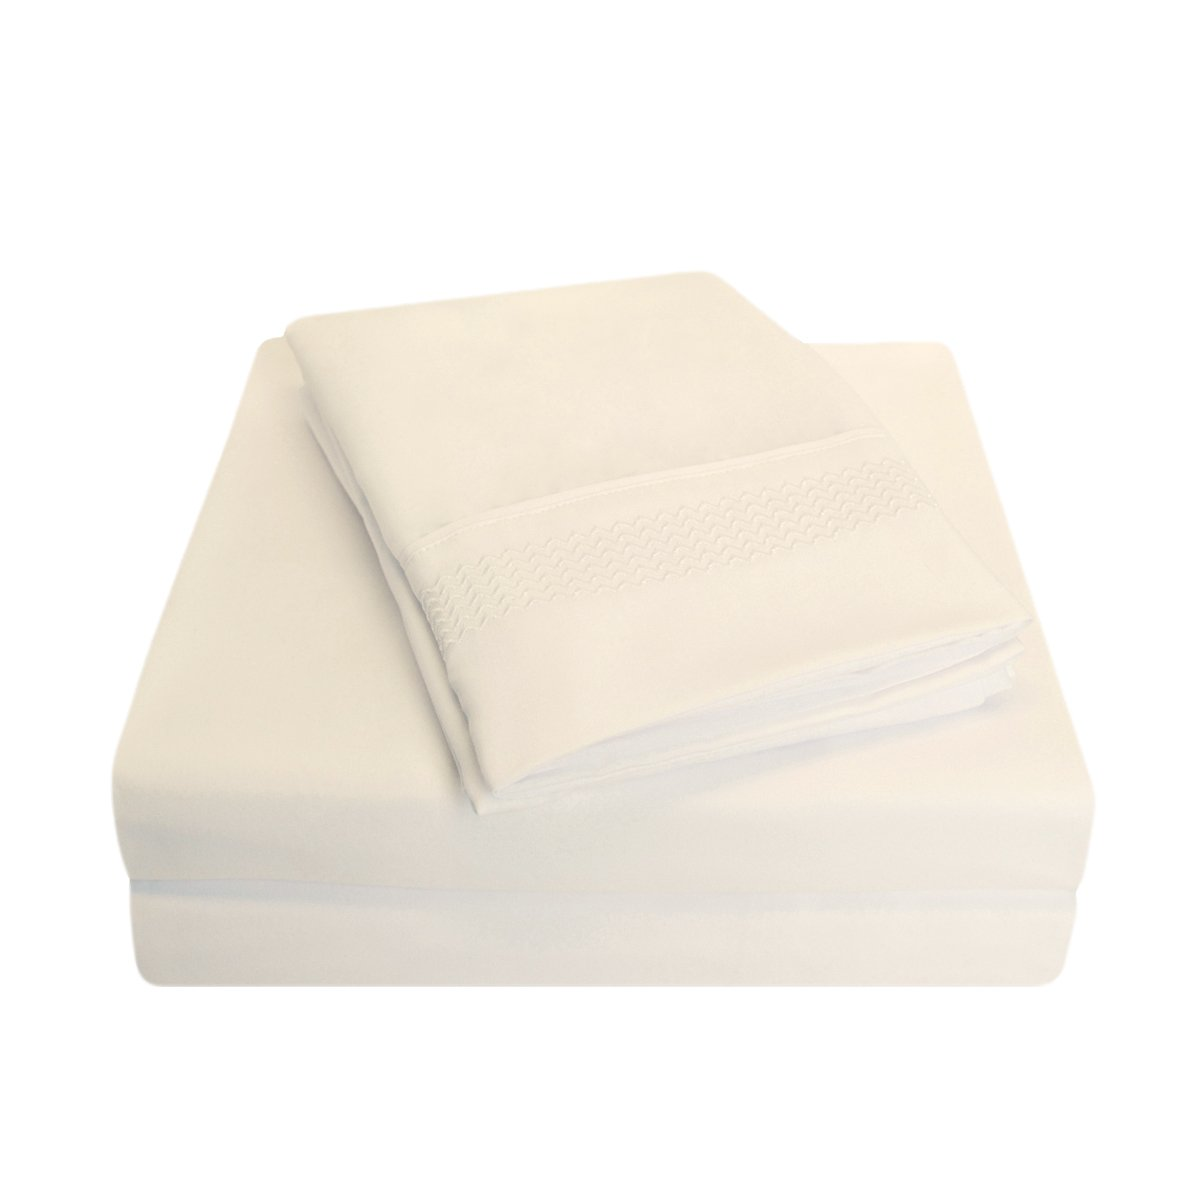 Wrinkle Resistant White 4-Piece Sheet Set with Light Blue Peaks Embroidery in Gift Box Super Soft Light Weight 100/% Brushed Microfiber Full